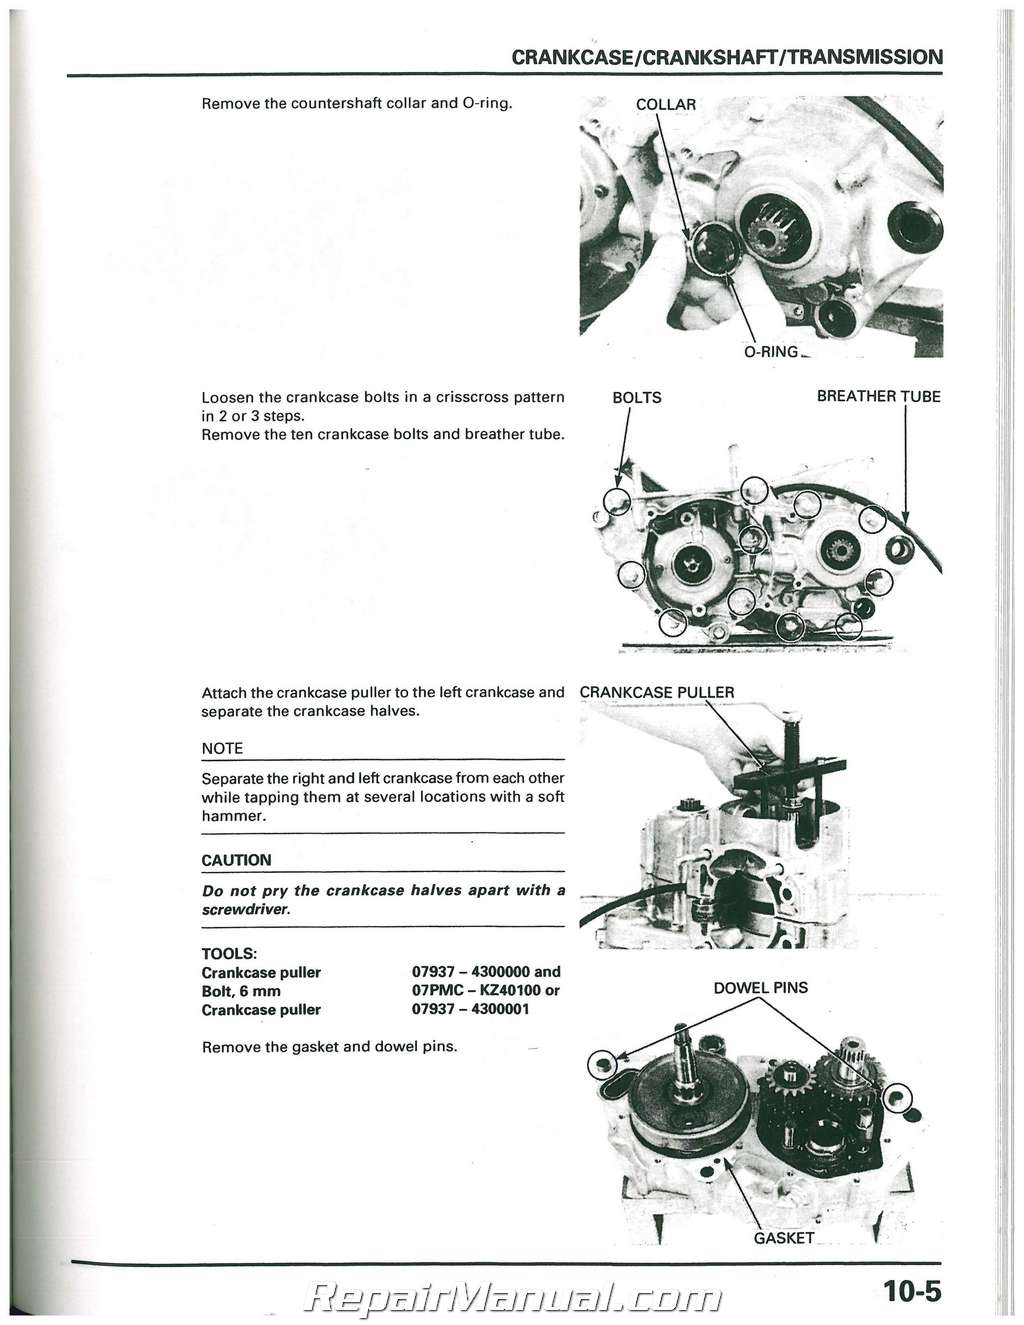 1997 1998 1999 honda cr250r motorcycle service manual rh repairmanual com 1993 Honda CR250 2000 Honda CR250